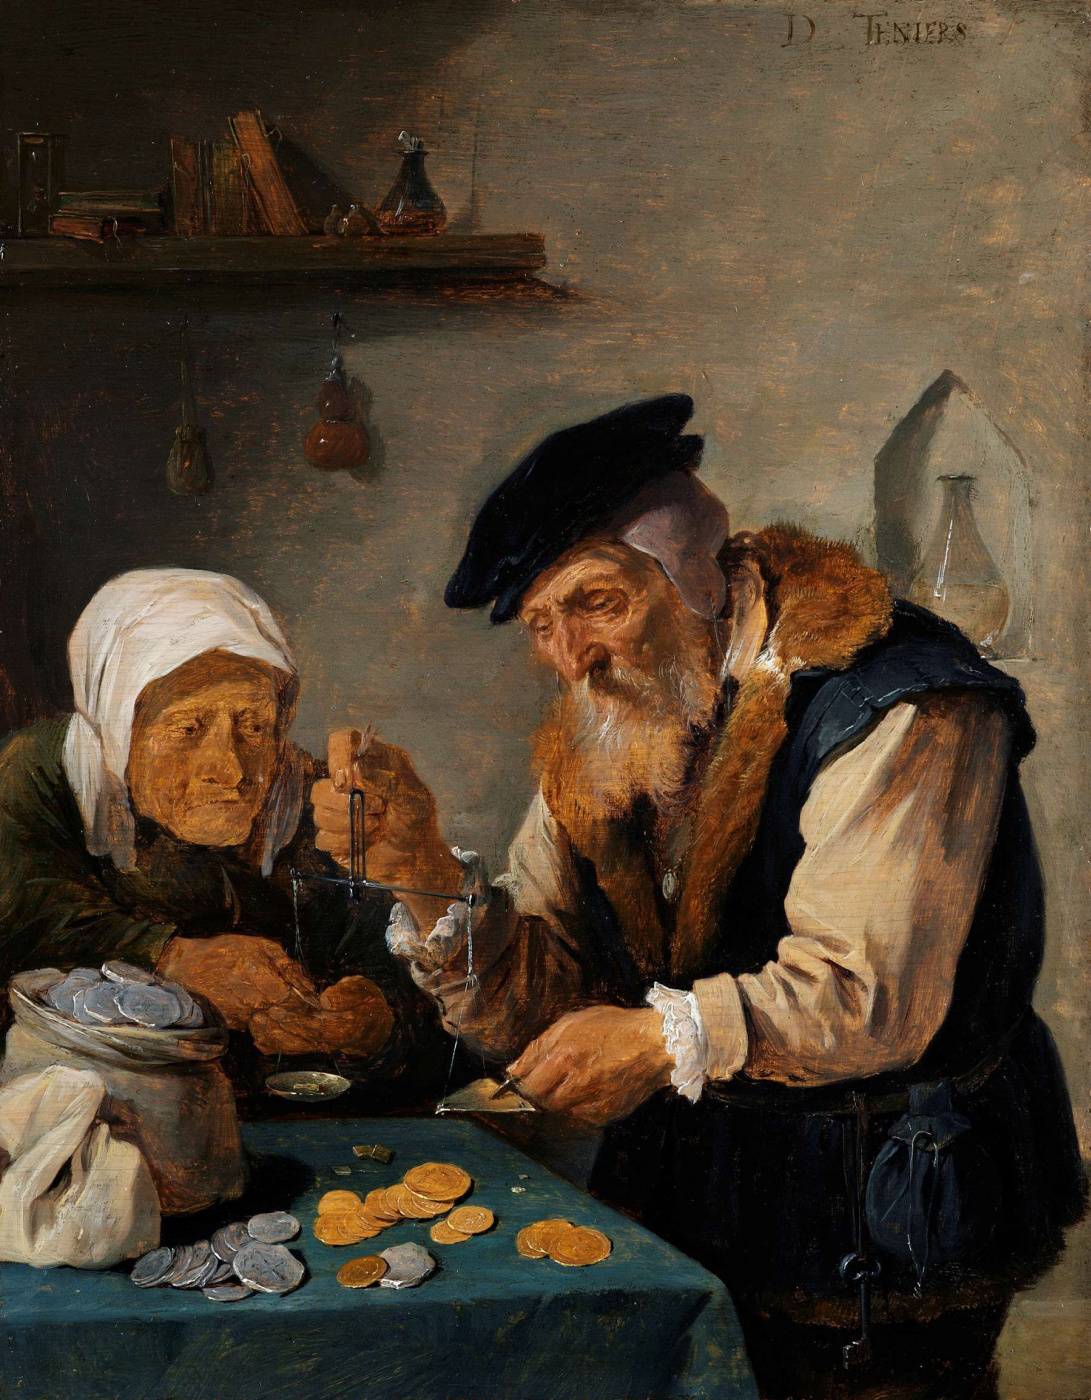 David Teniers the Younger. Allegory of Greed